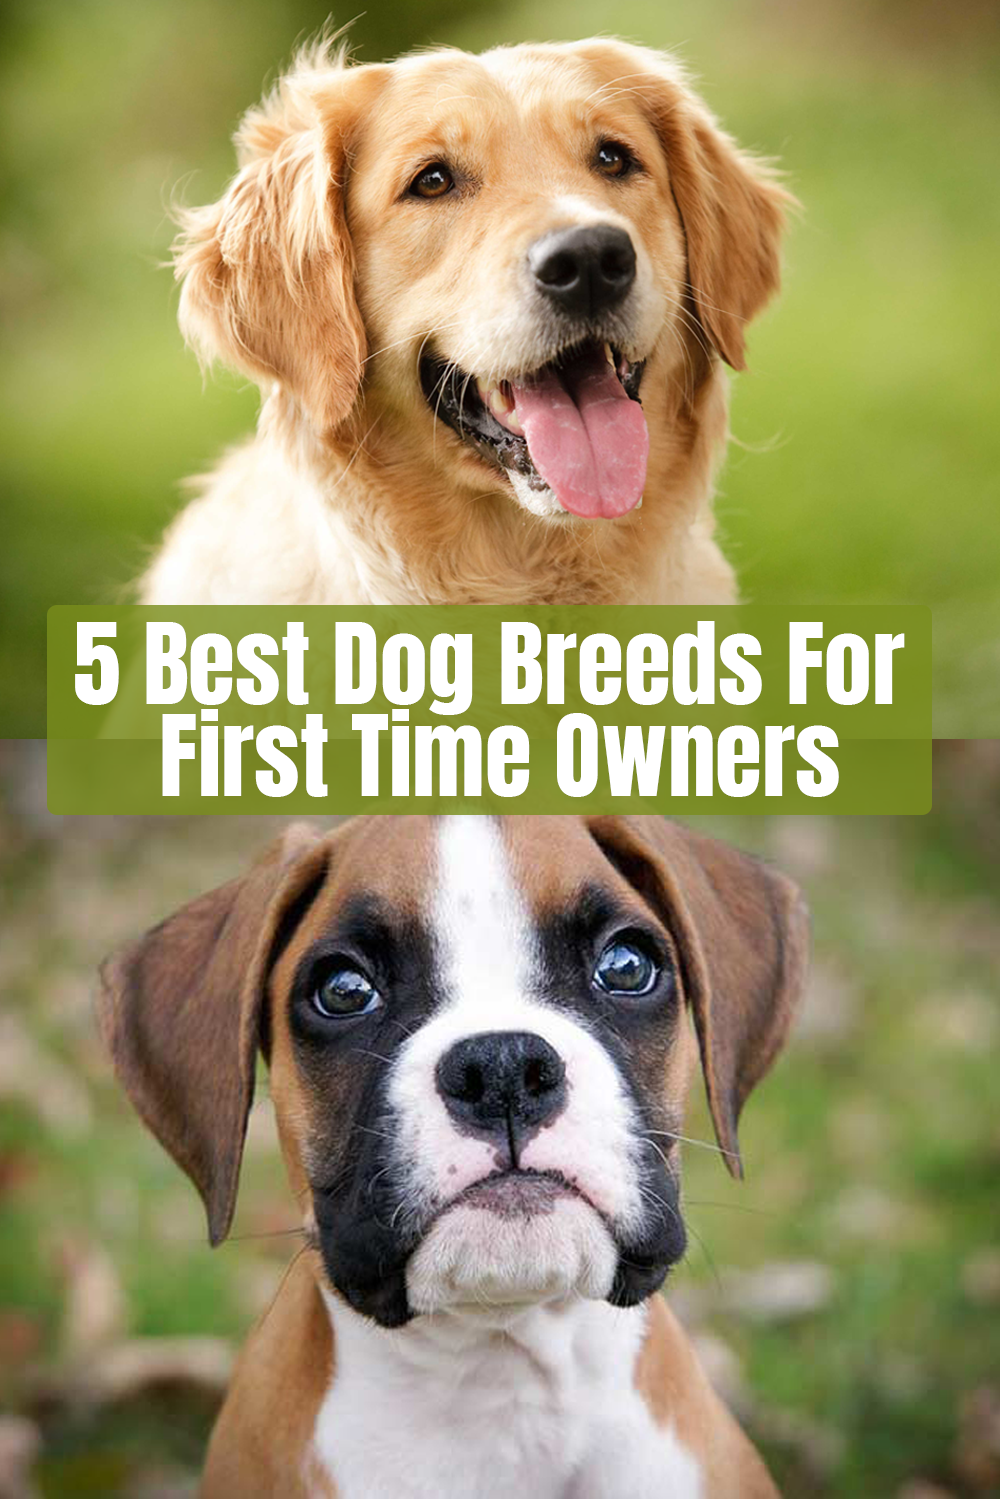 5 Best Dog Breeds For First Time Owners Lazy Dog Breeds Dog Breeds Best Dogs